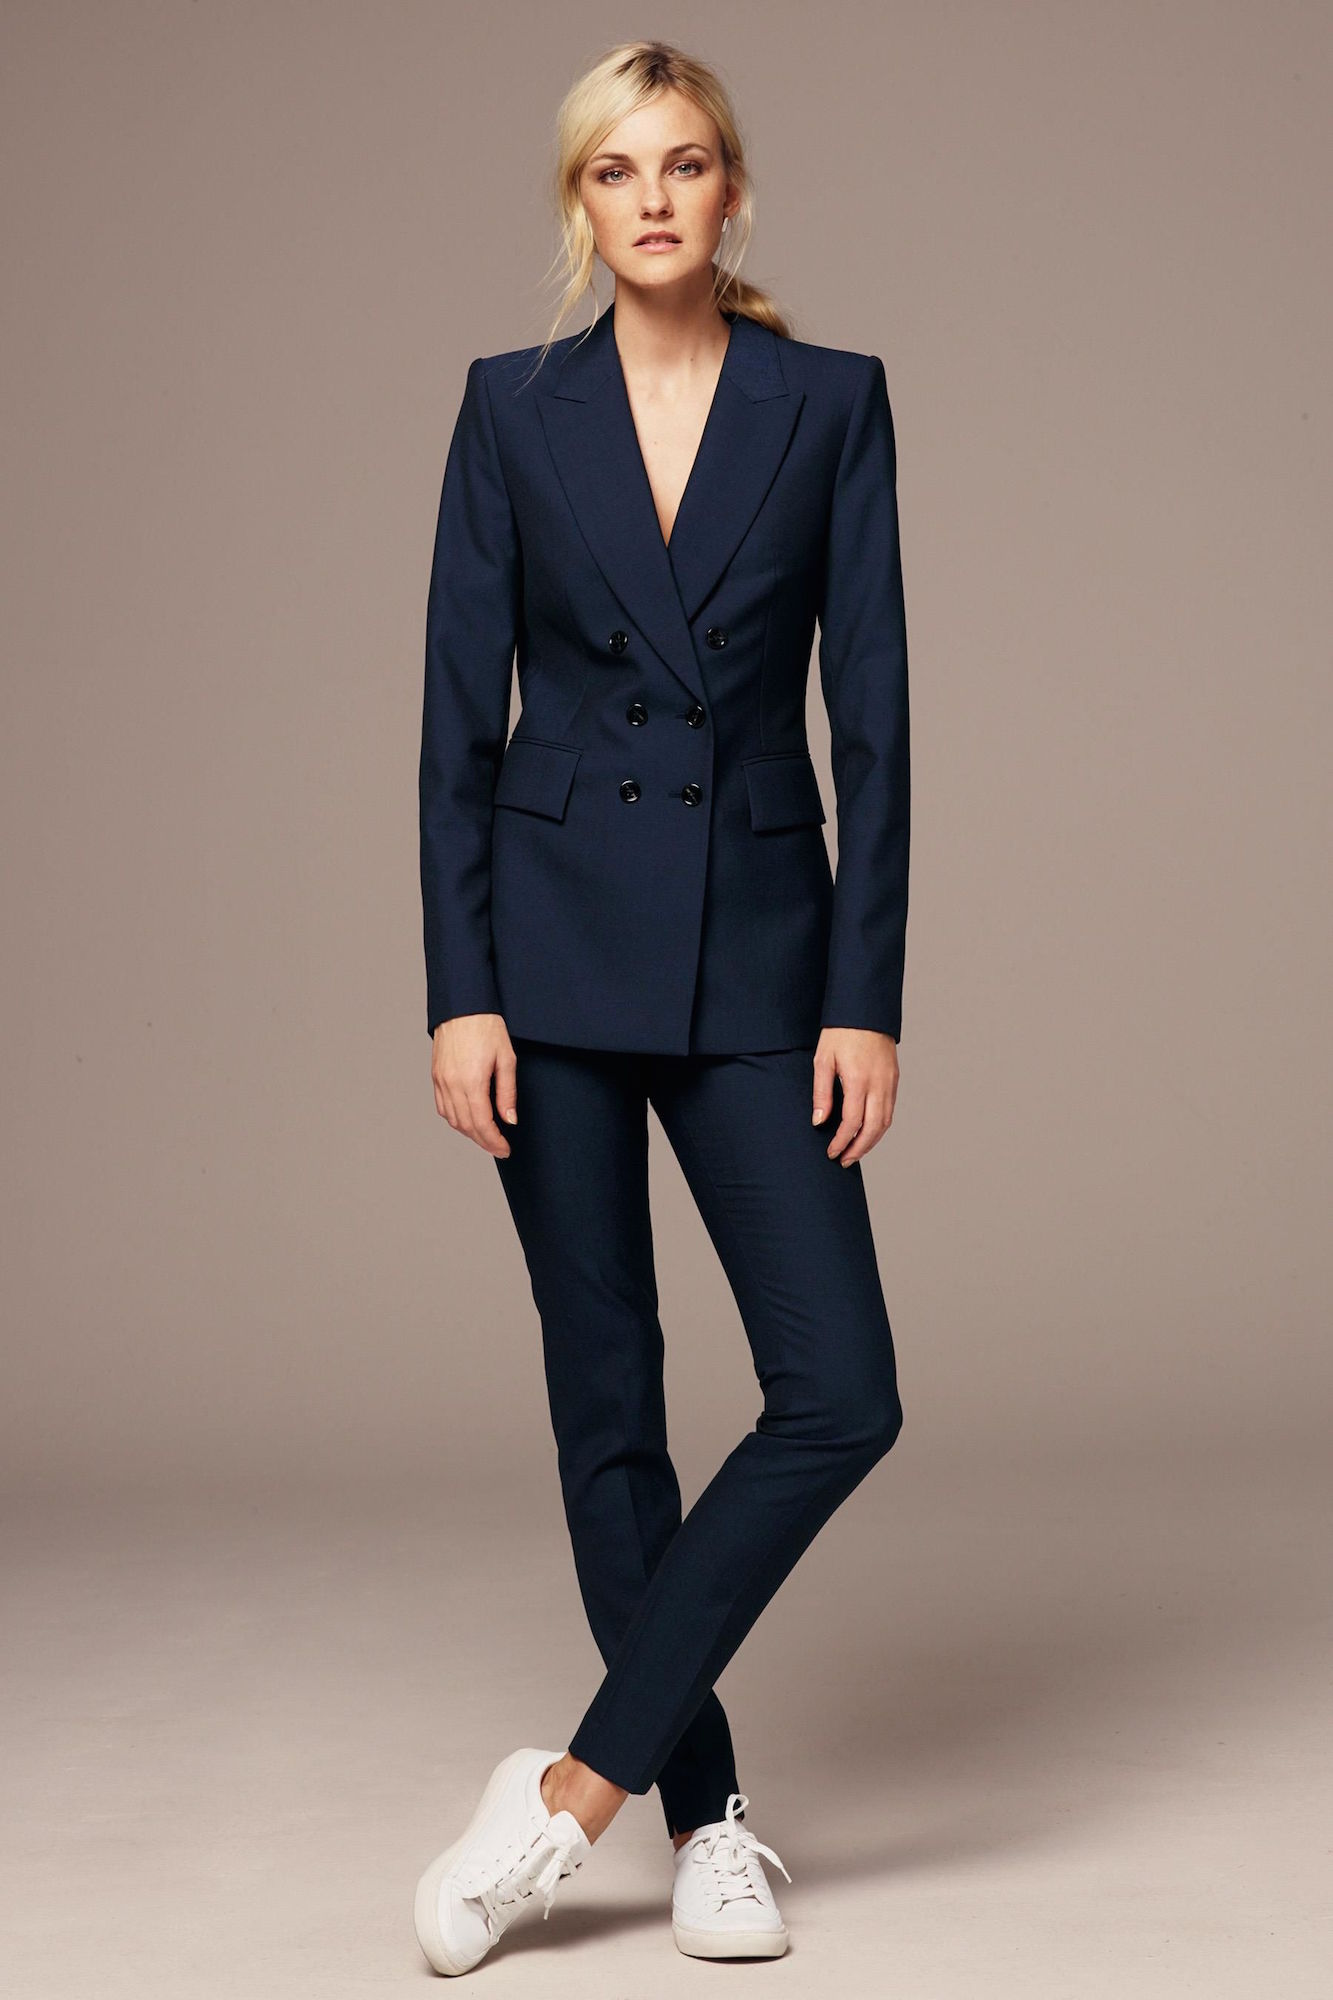 limpid in sight details for complete range of articles Next Navy Suit | Killer Fashion